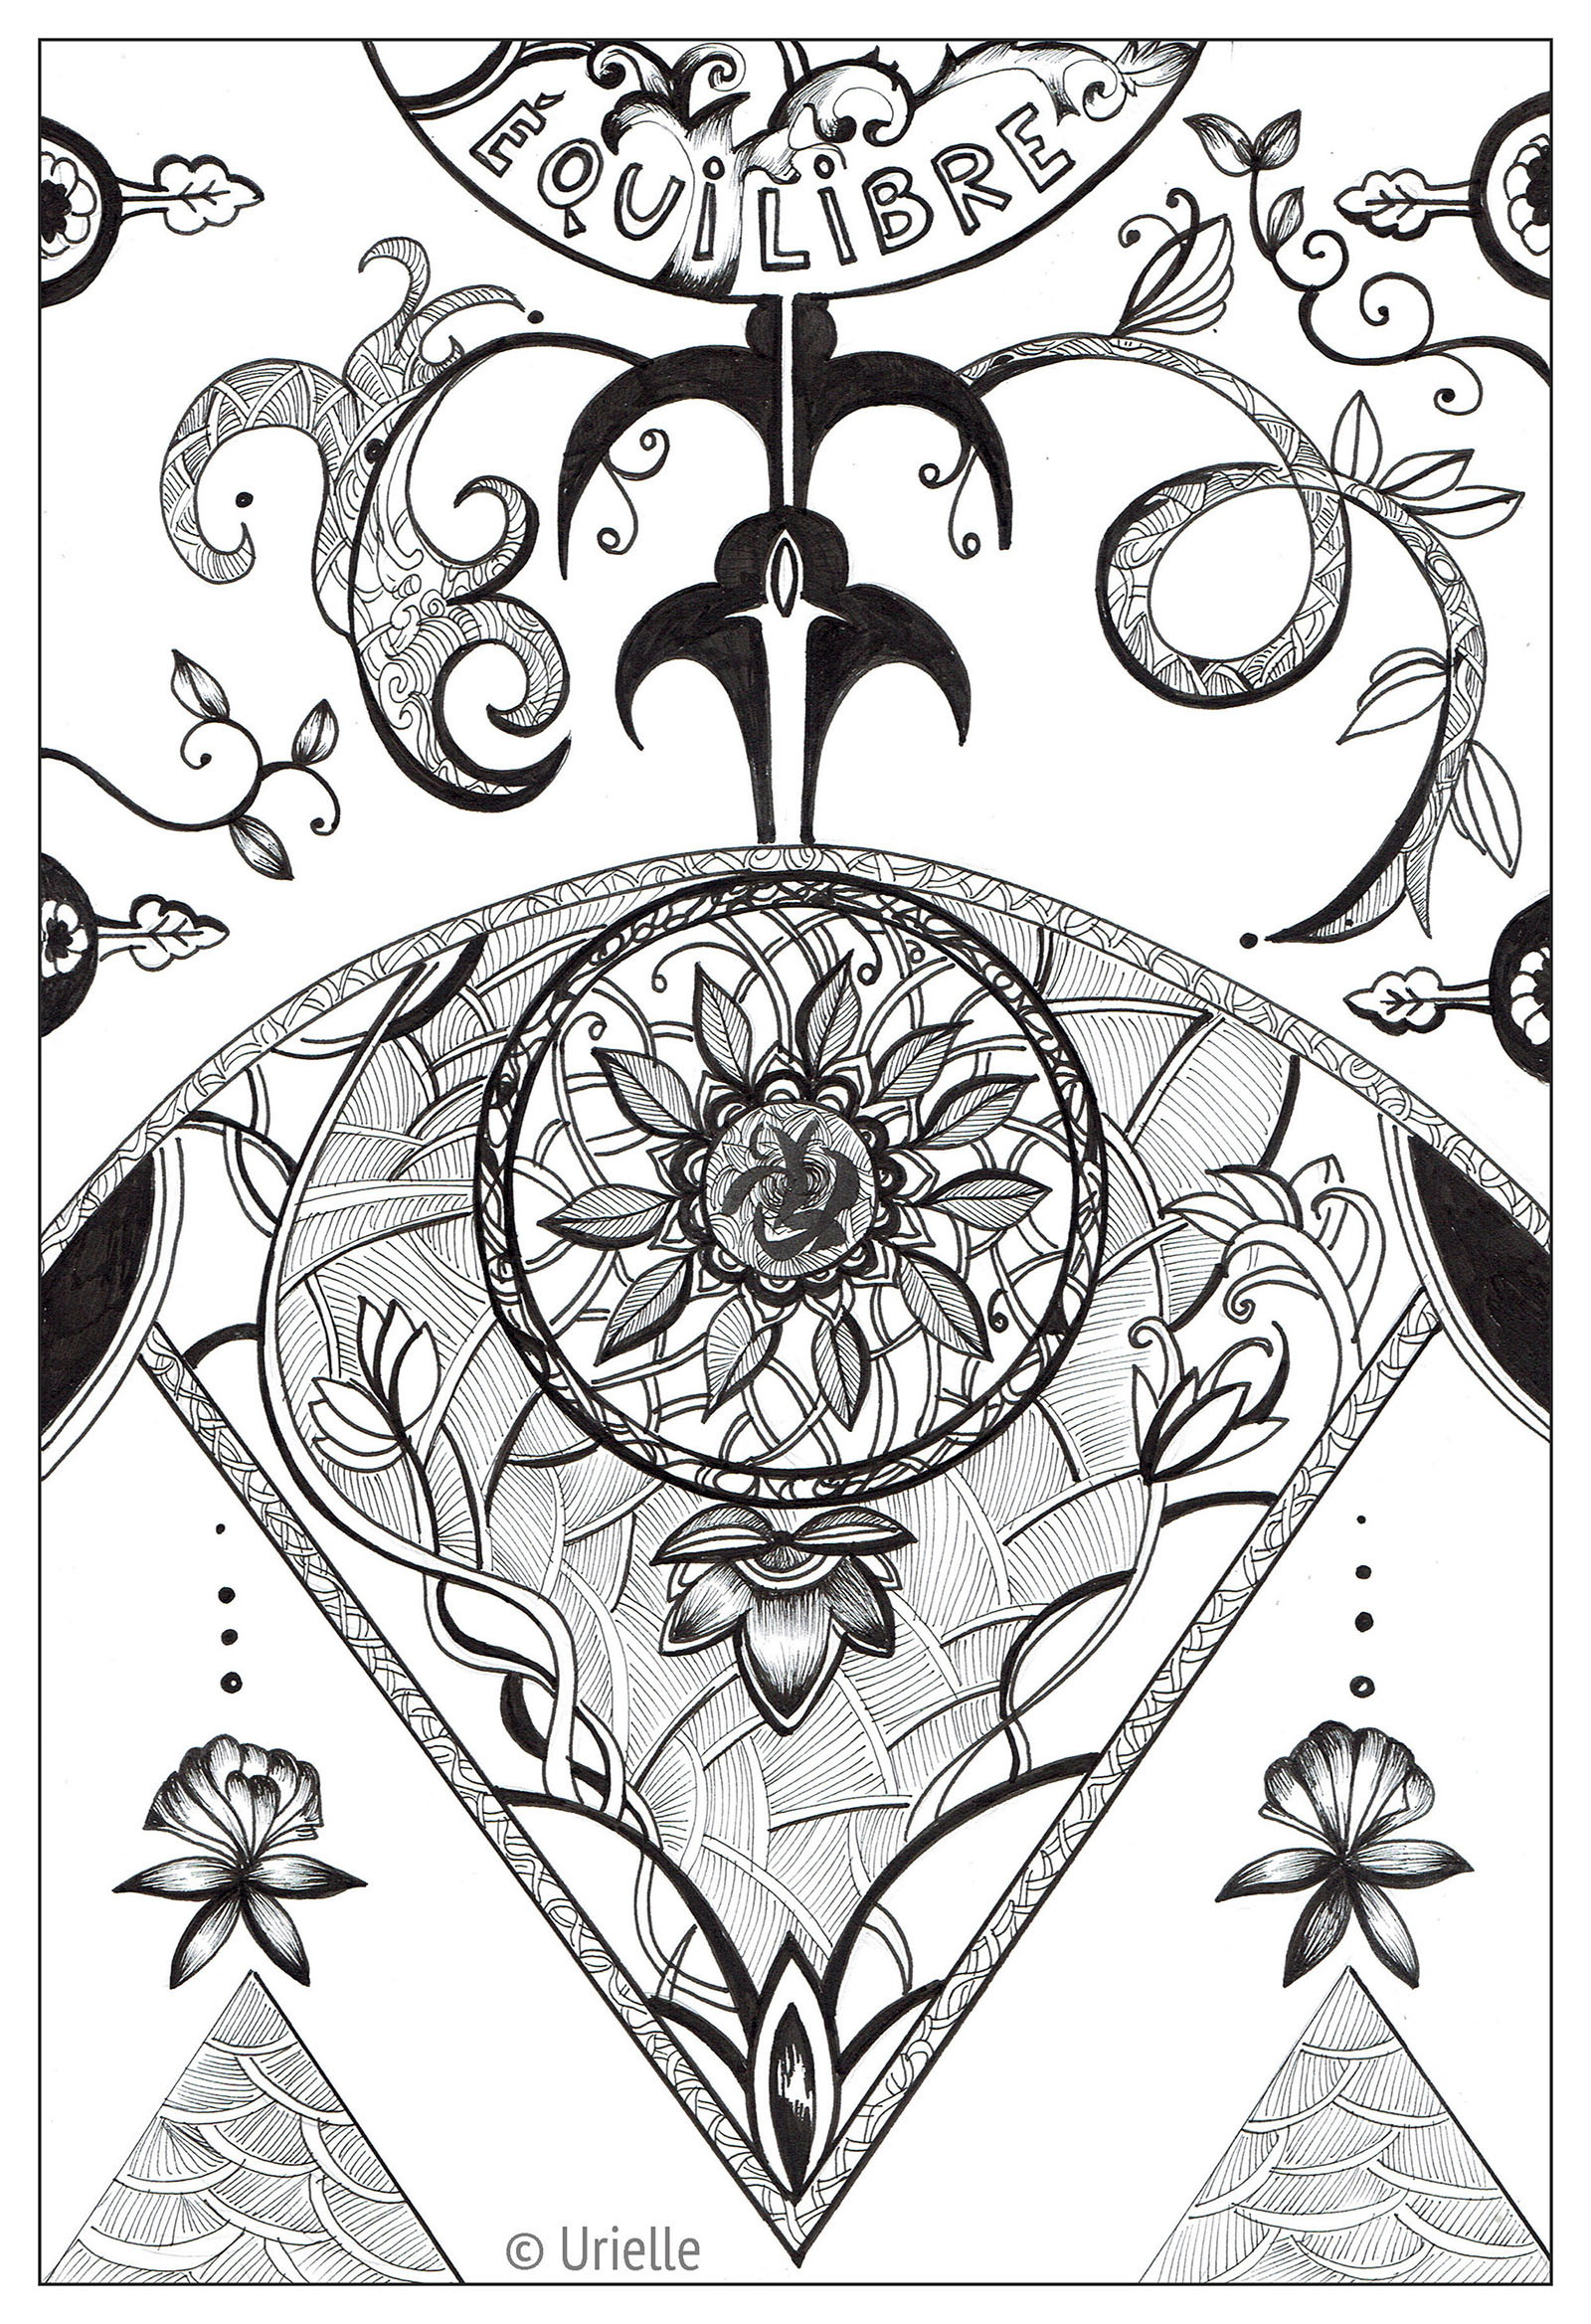 coloring page adult urielle balance equilibre free to print